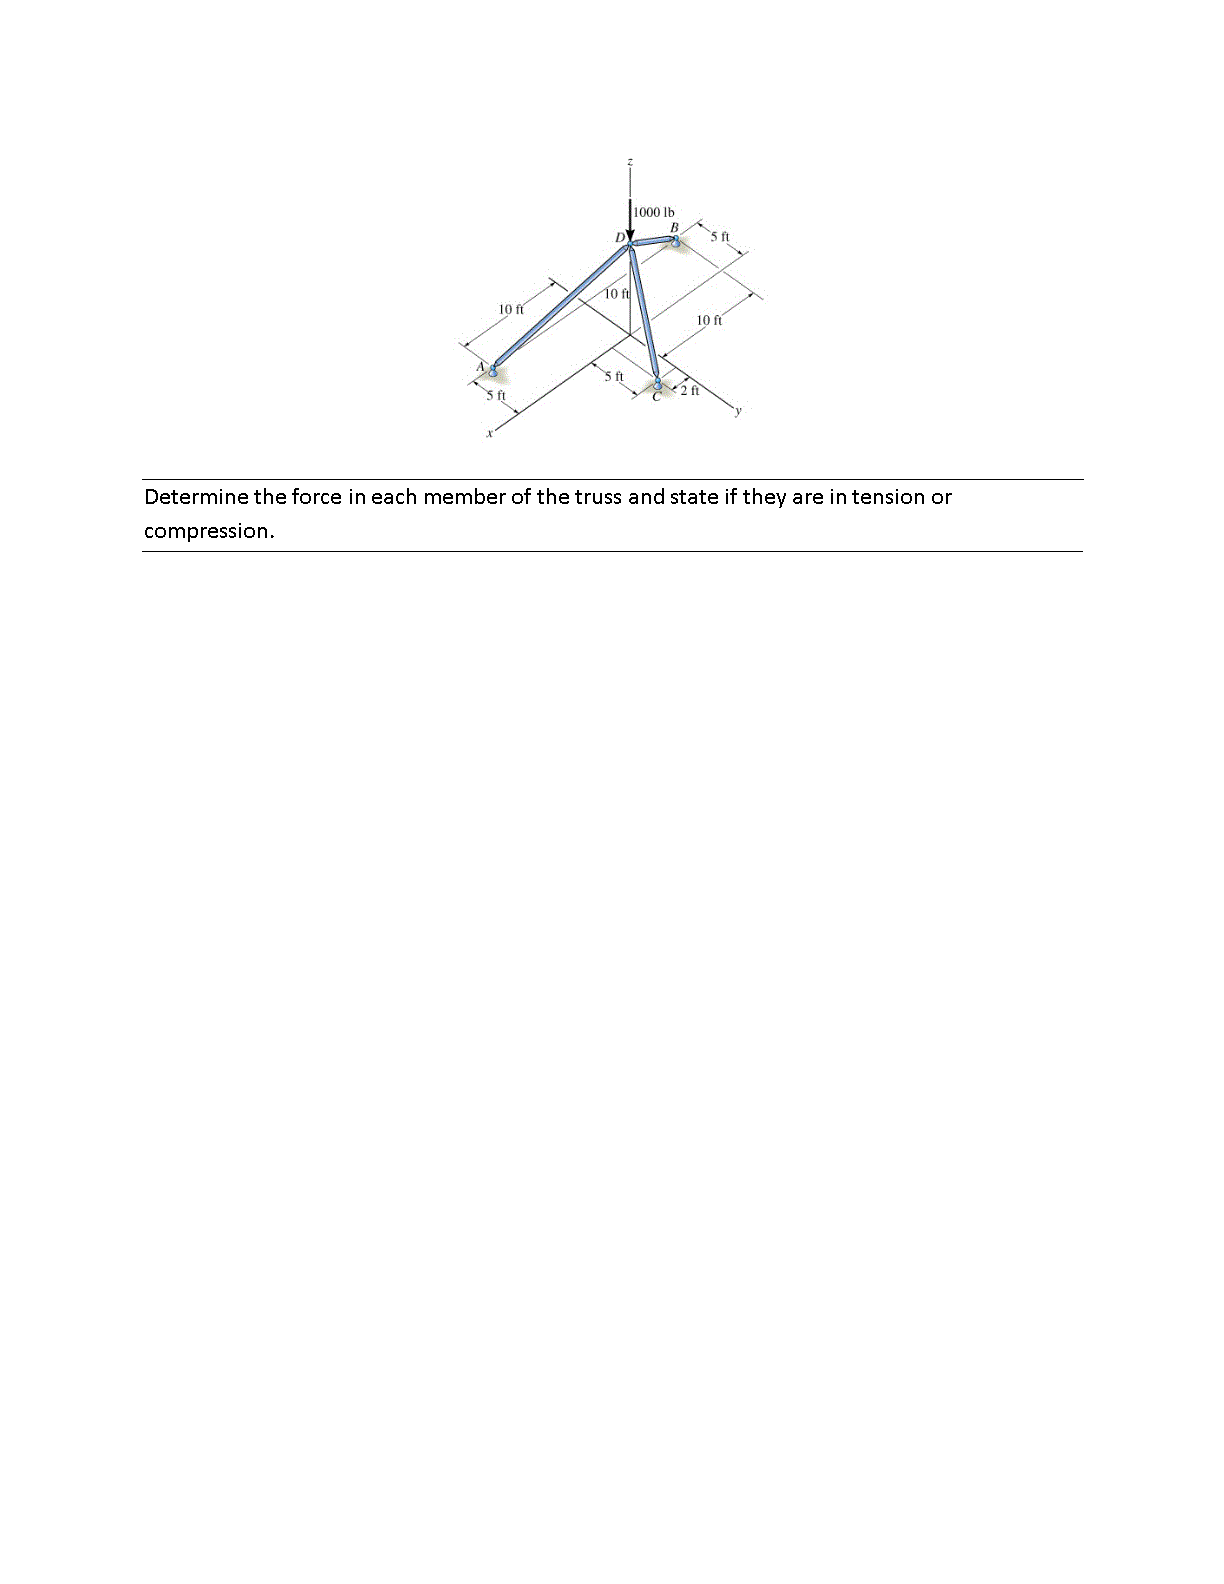 truss tension and compression diagram 1999 ford f150 alternator wiring solved determine the force in each member of an